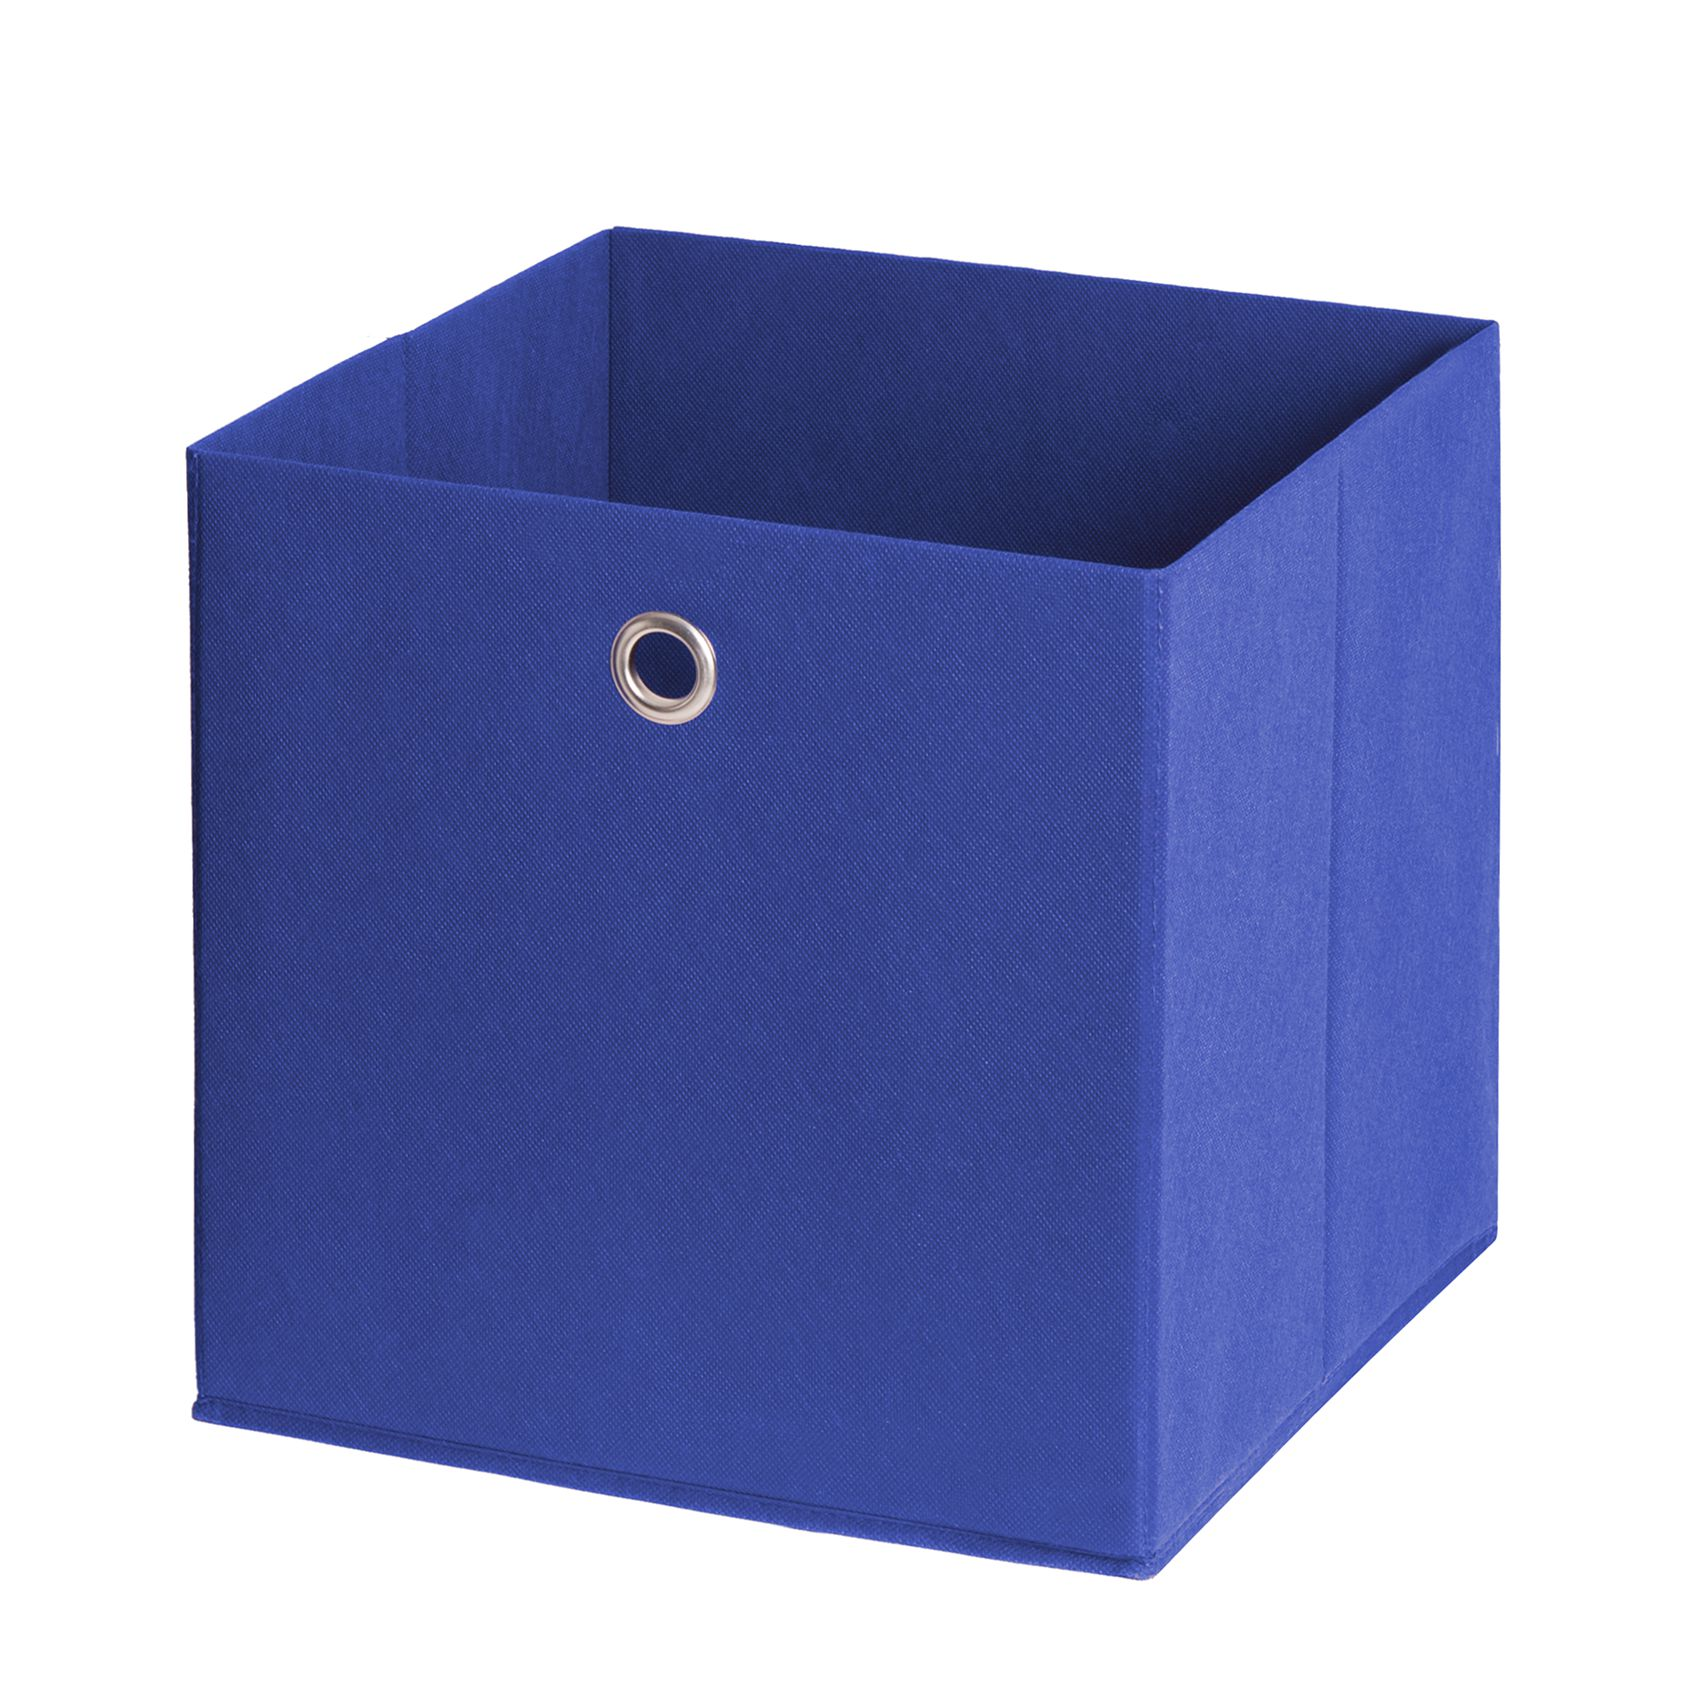 Faltbox Uni (2er Set) - Royalblau, Schildmeyer